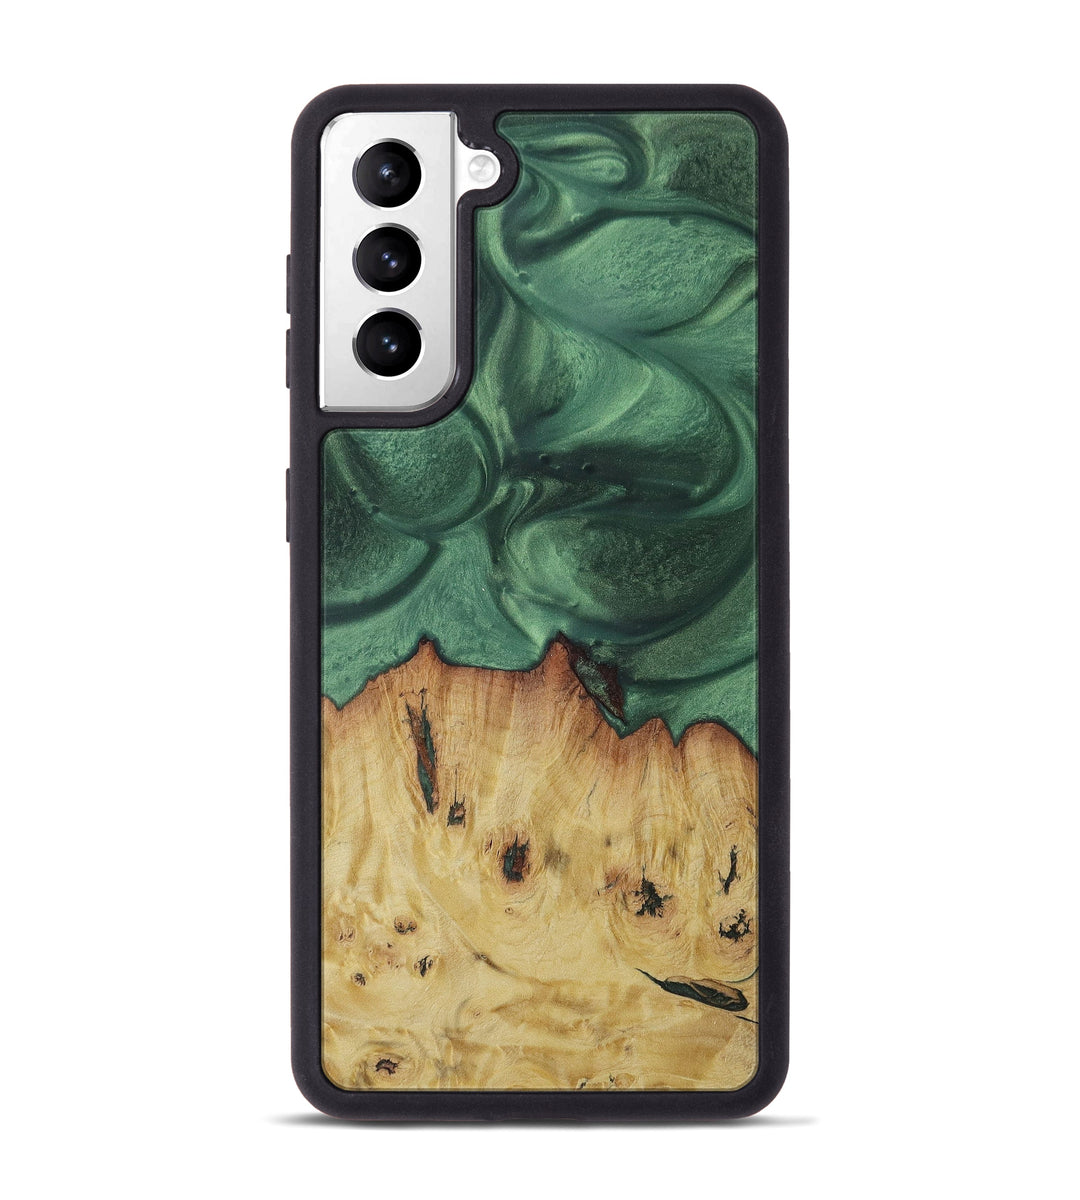 Galaxy S21 Wood+Resin Phone Case - Ebony (Dark Green, 427058)